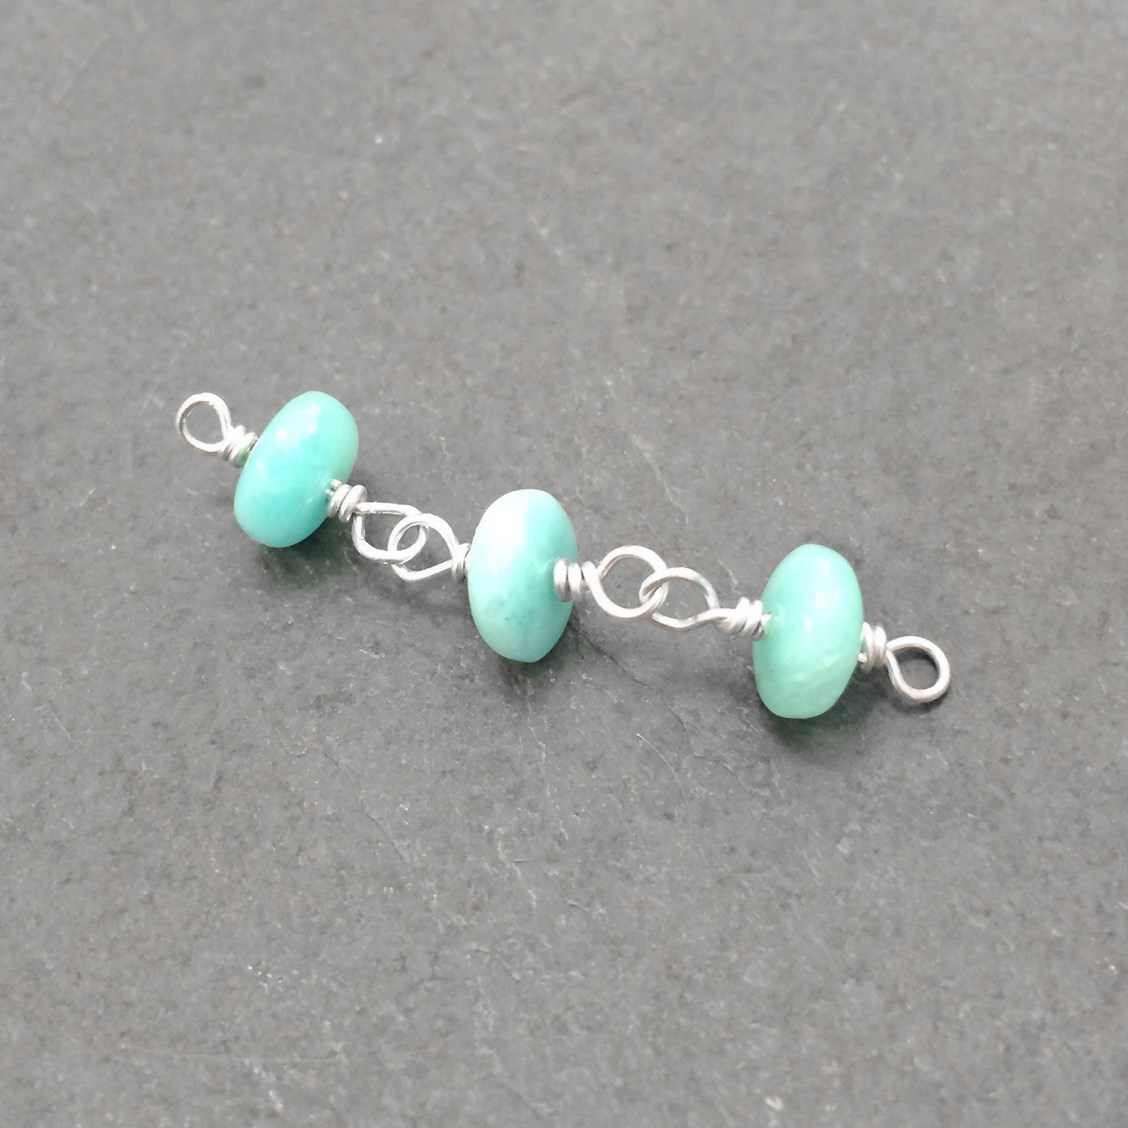 How To Make A Wire Wrapped Bead Chain